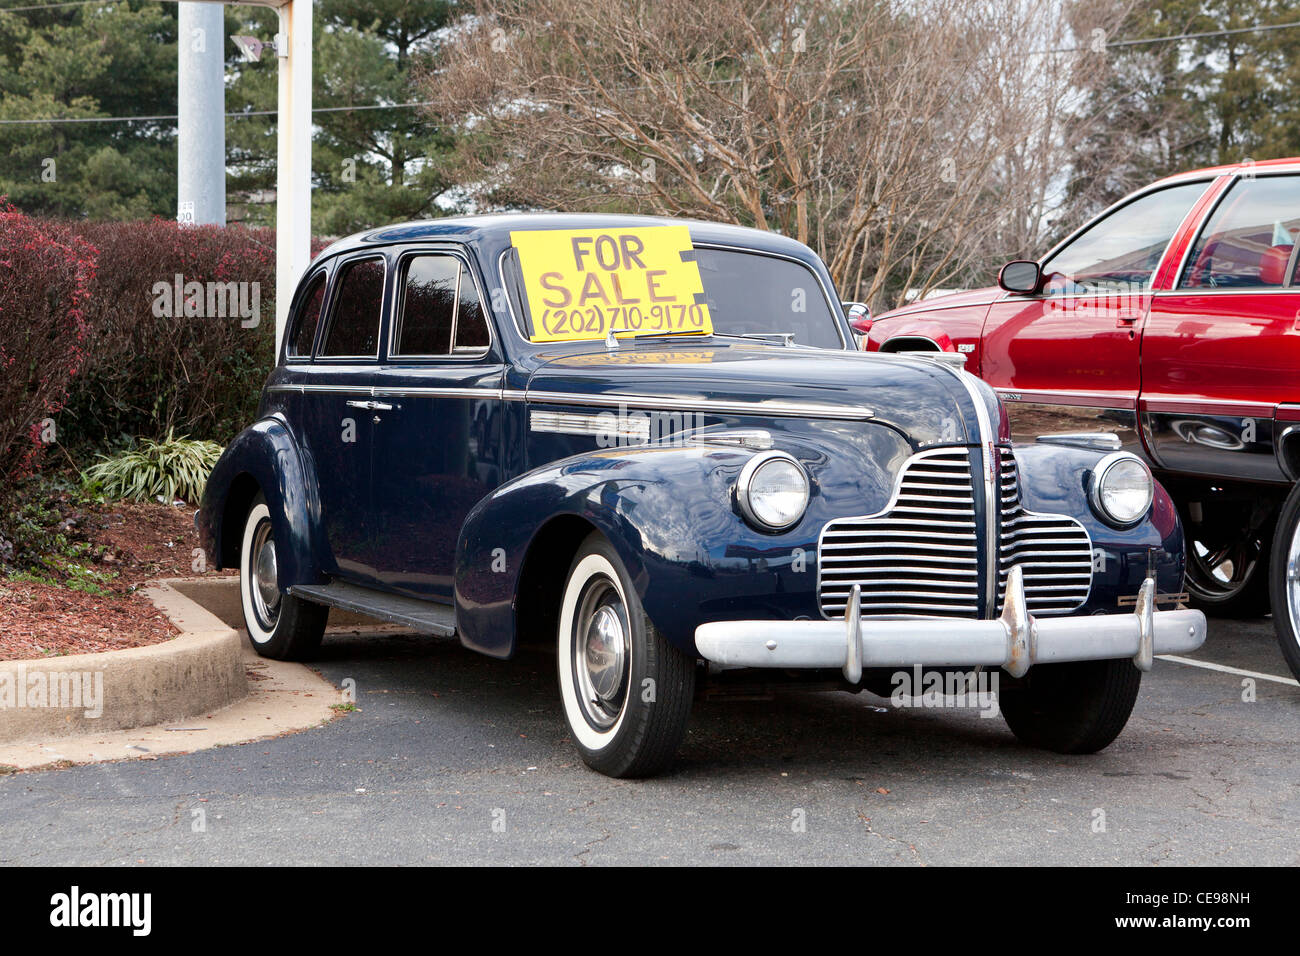 Beautiful Car For Sale Usa Images - Classic Cars Ideas - boiq.info